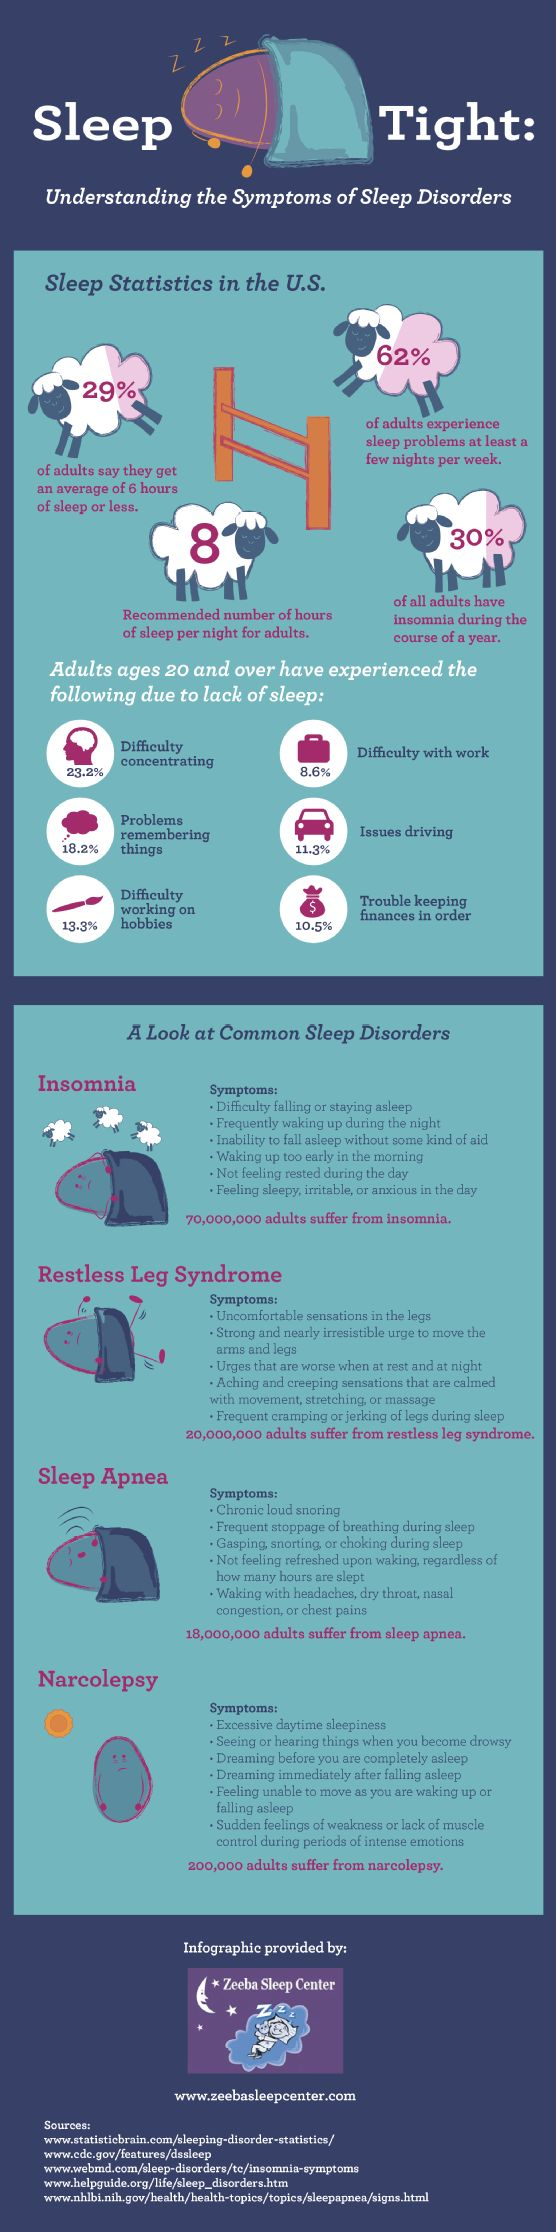 Sleep Tight: Understanding the Symptoms of Sleep Disorders: Get better health at: http://www.greenthickies.com